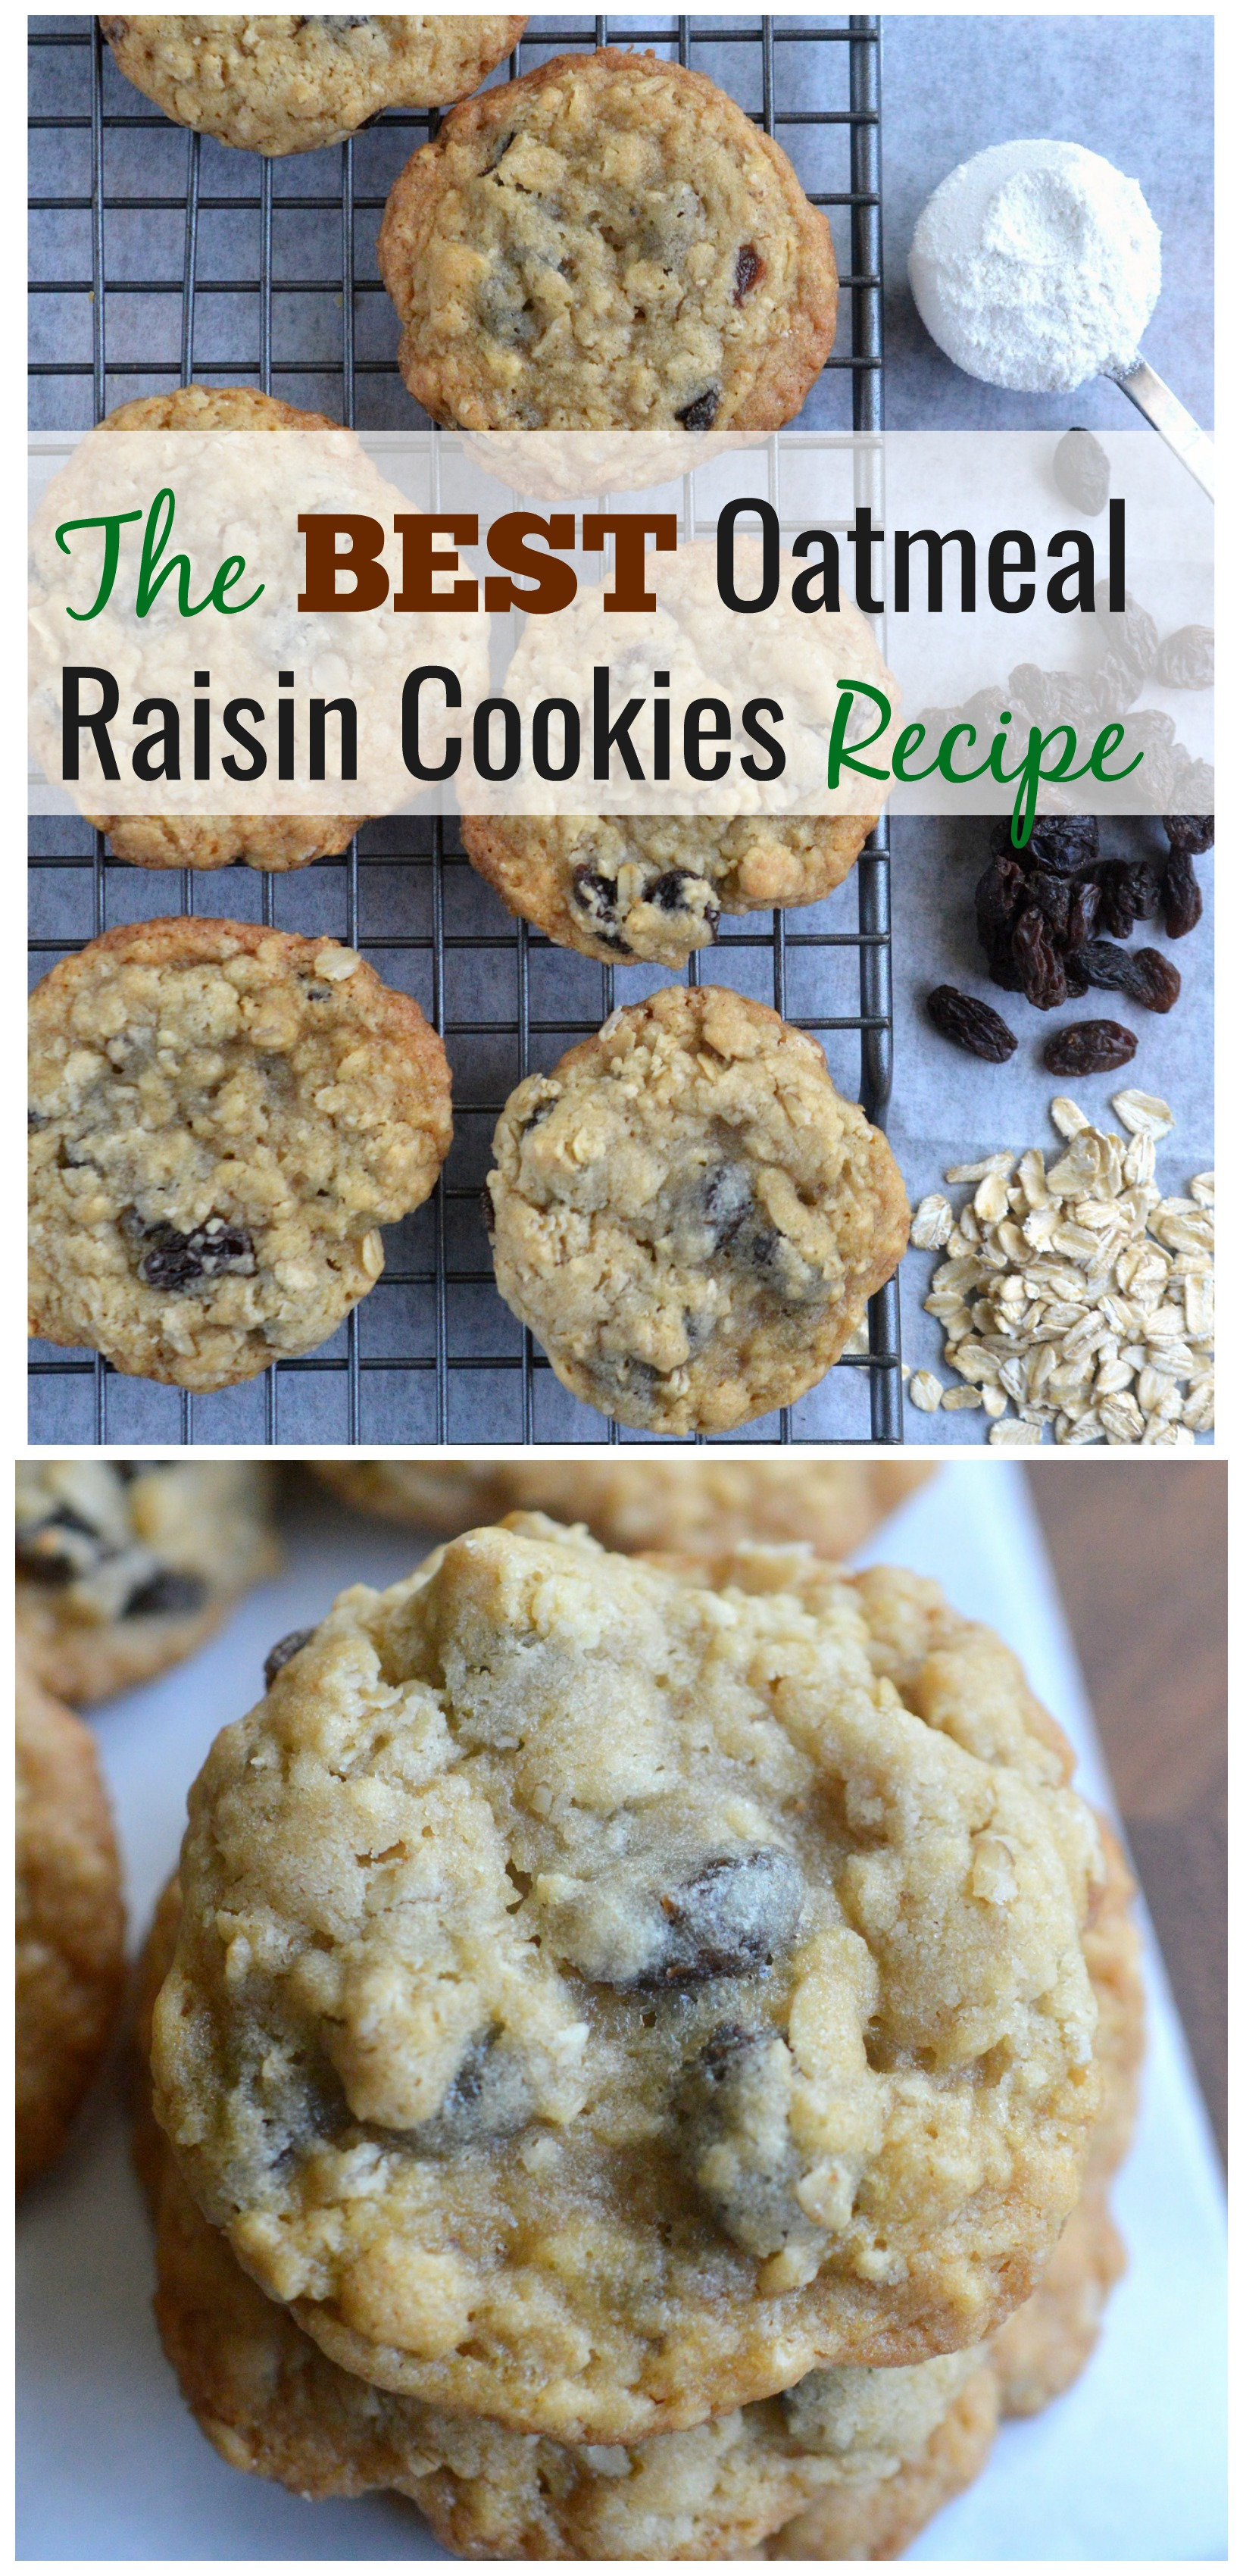 The BEST Oatmeal Raisin Cookies Recipe